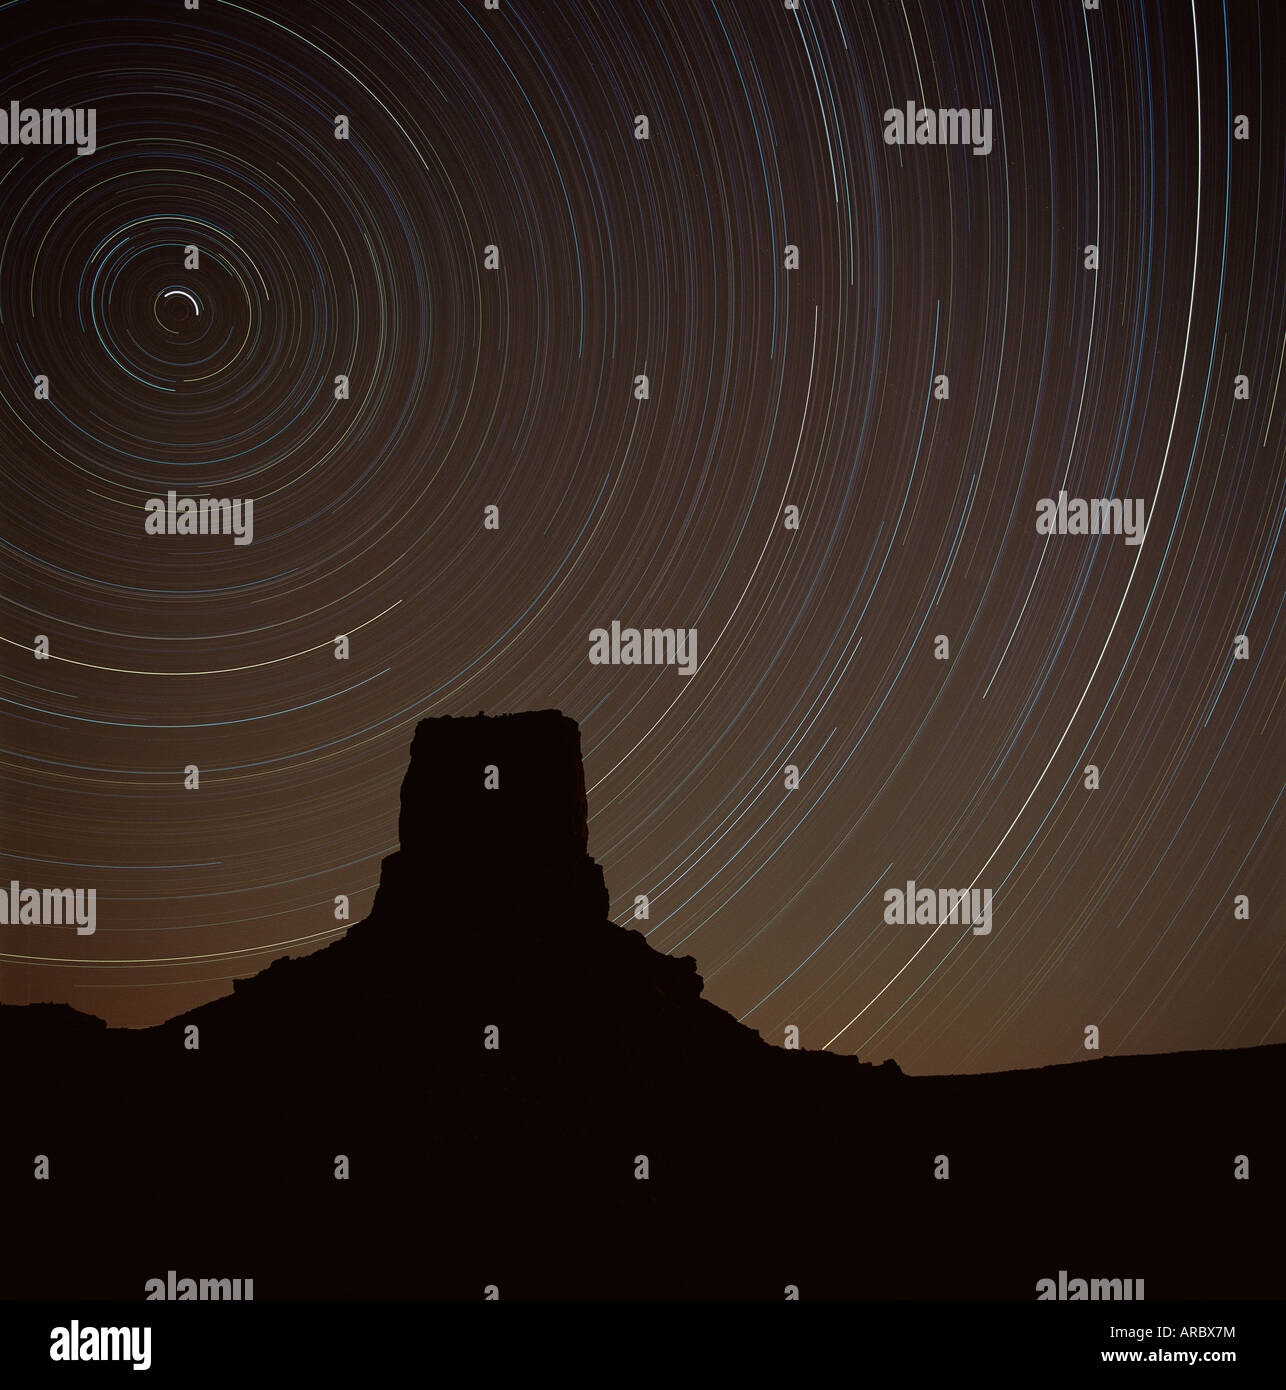 Star trek over Monument Valley, Monument Valley, an area in Utah and Arizona, USA (U.S.A.) - Stock Image